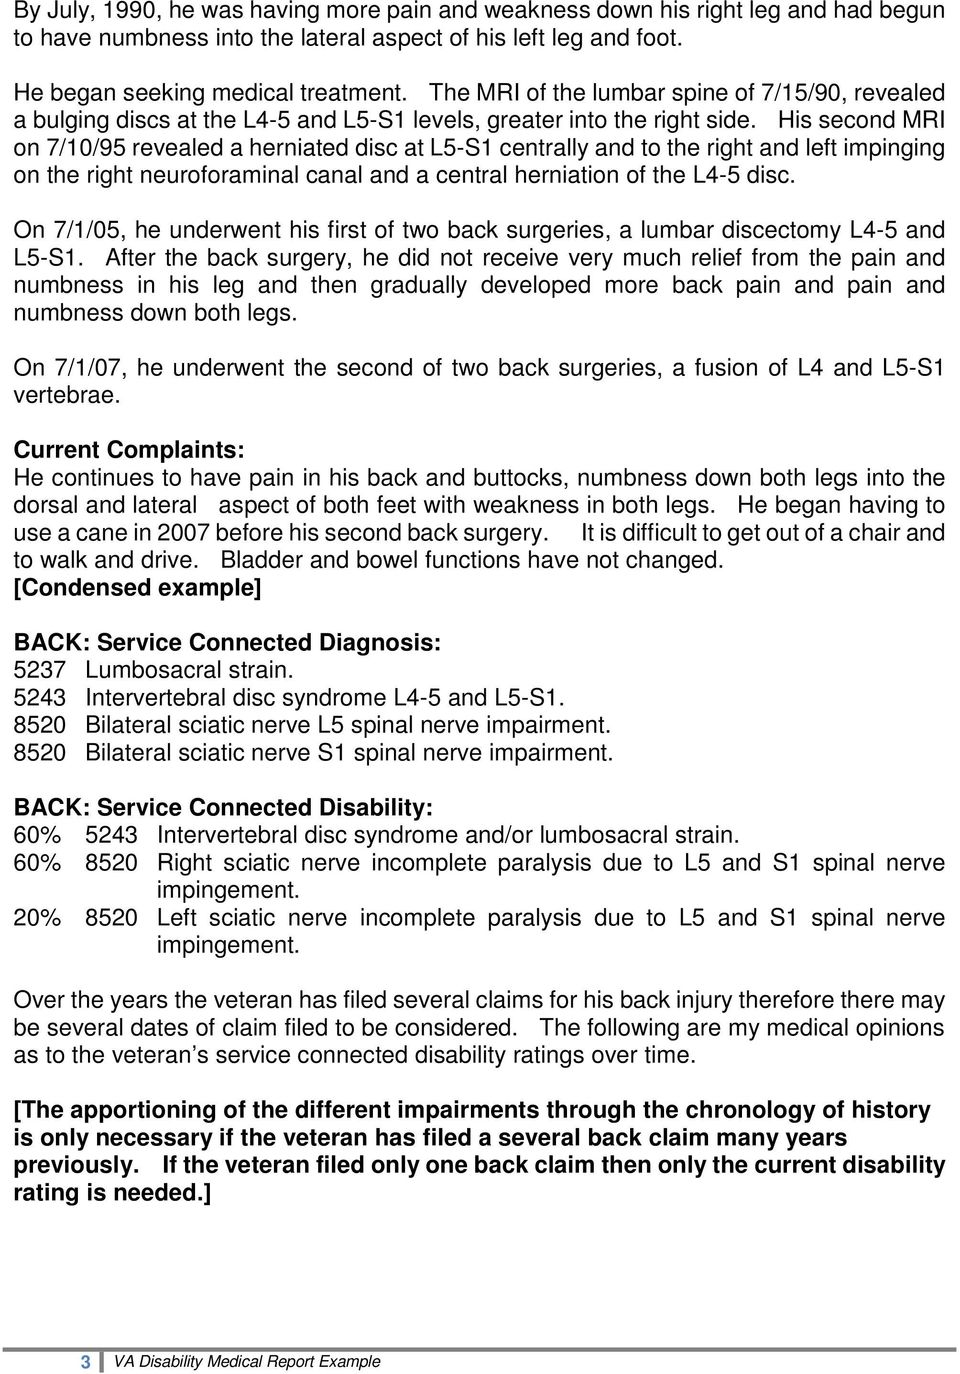 VA Disability Medical Evaluation Example with Ratings - PDF